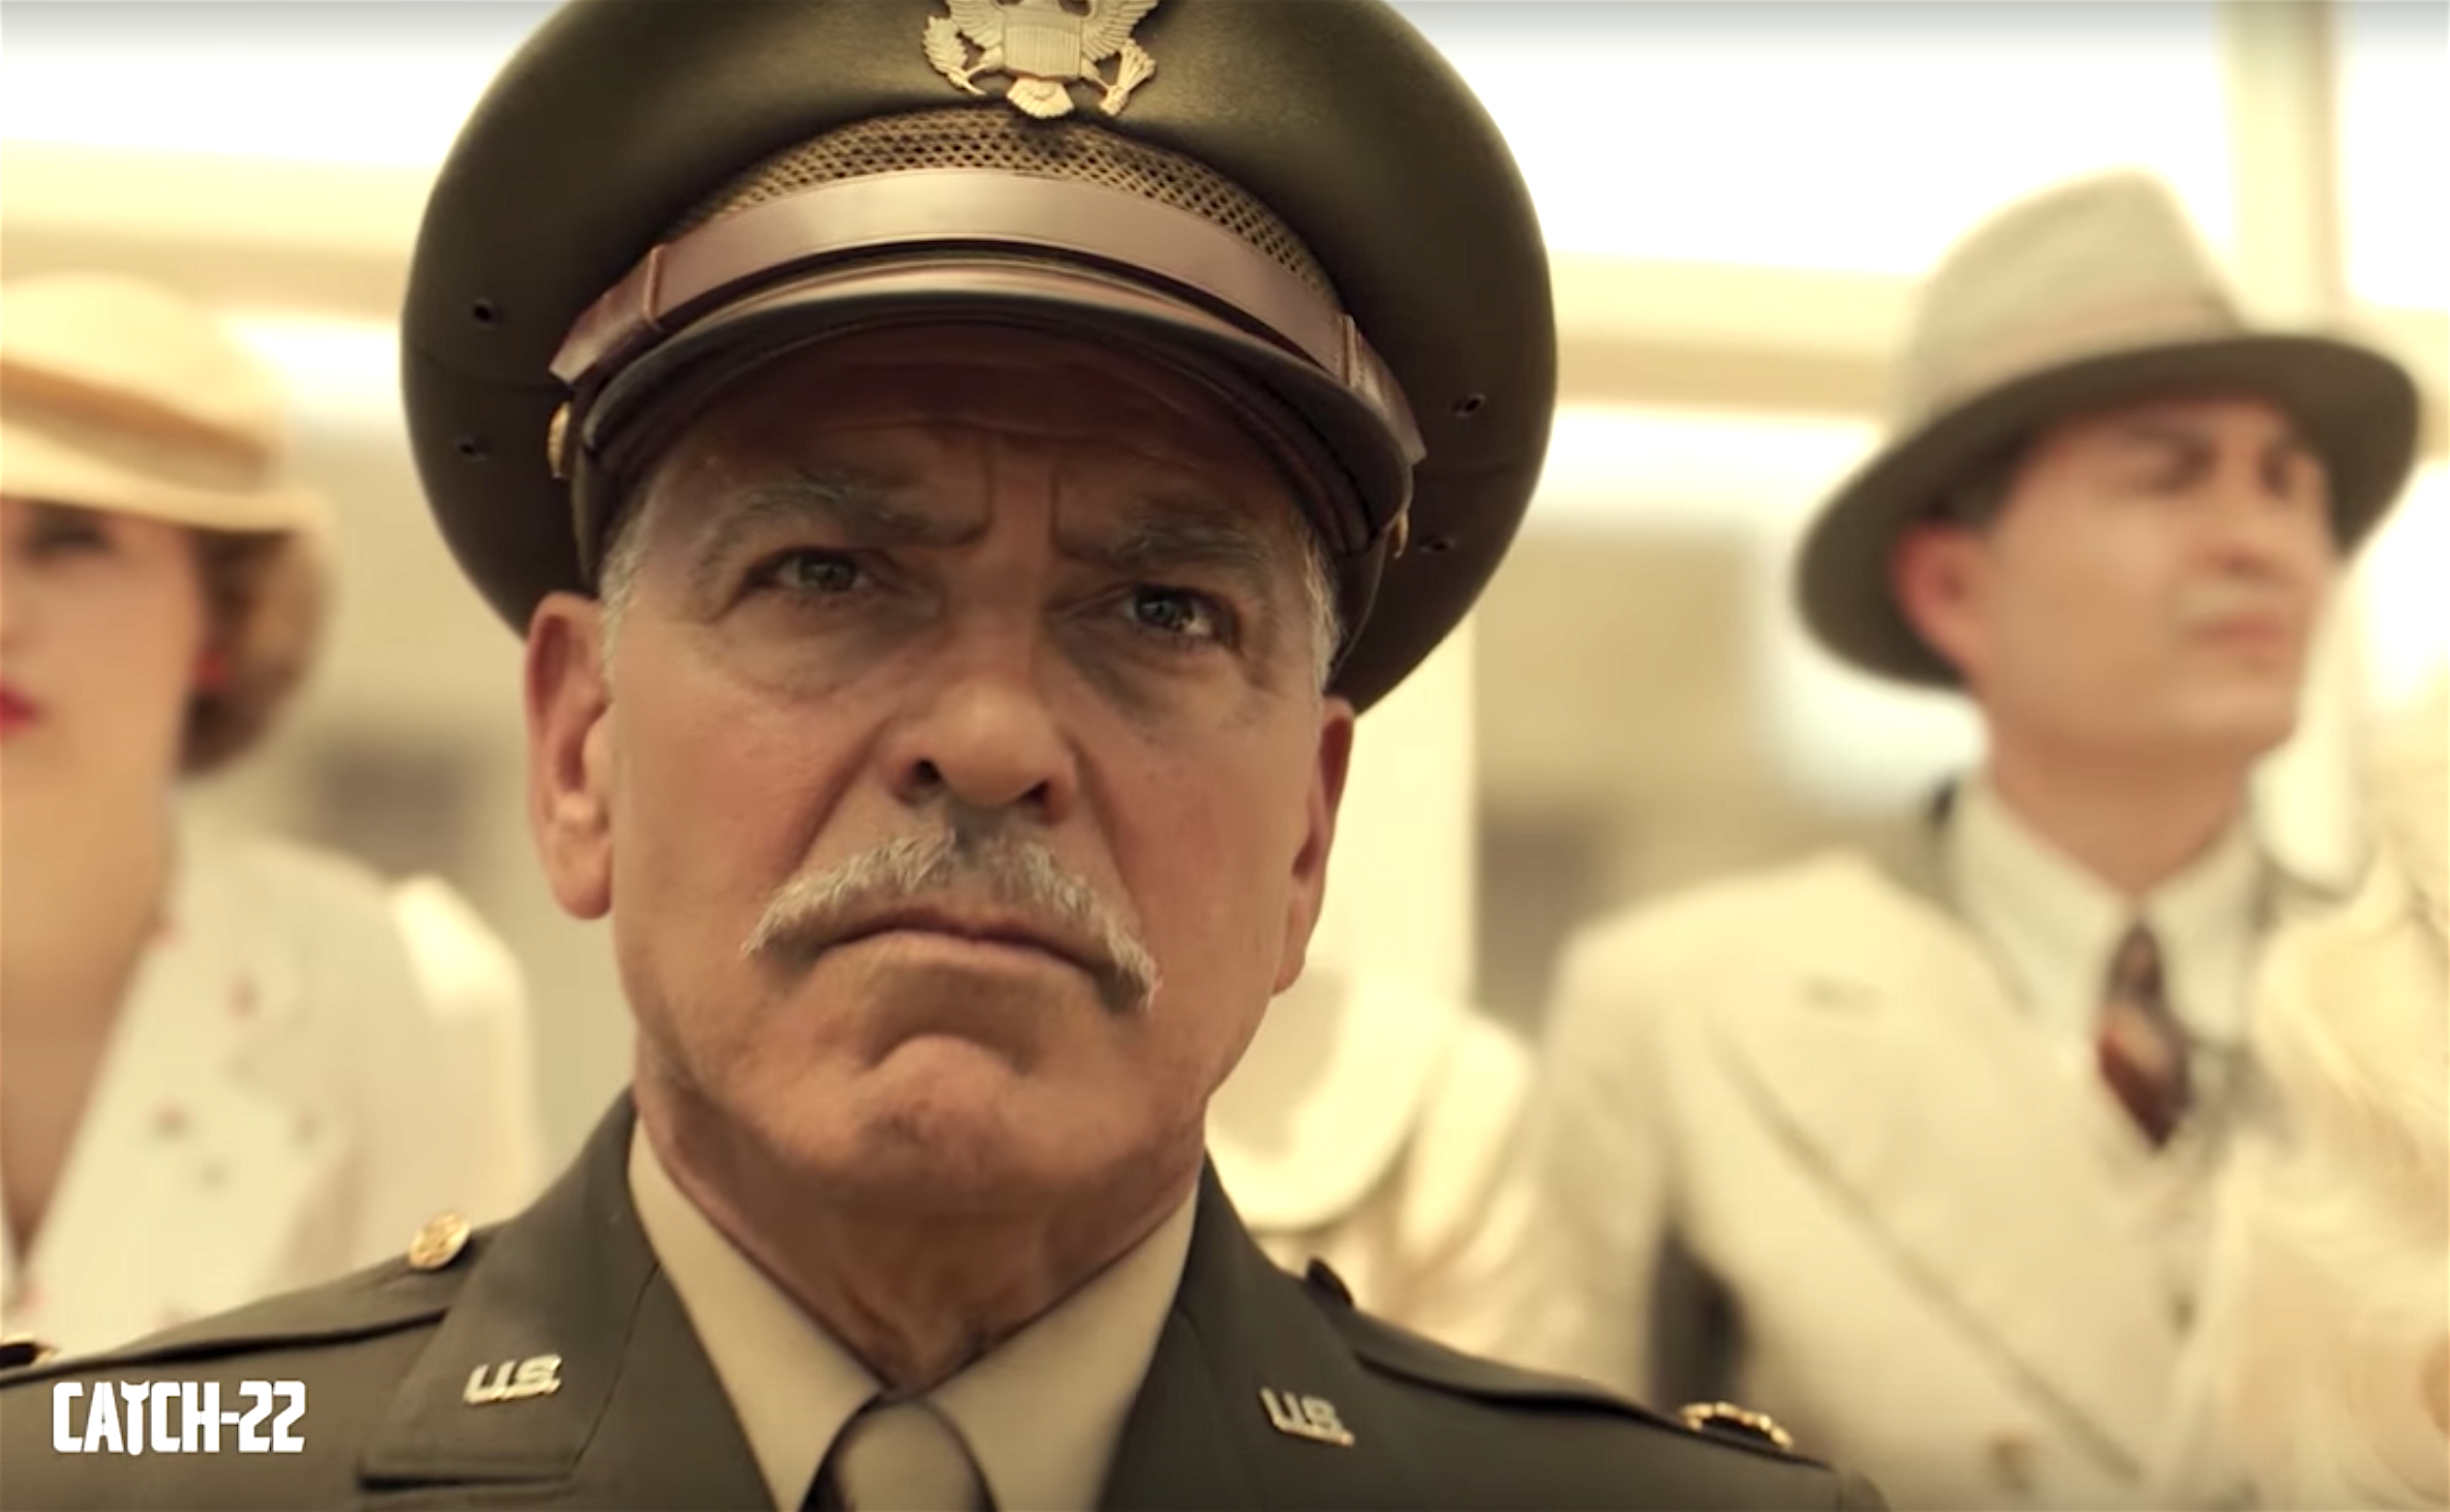 'Catch-22' Trailer: George Clooney Scowls and Growls in Hulu's War Satire — Watch